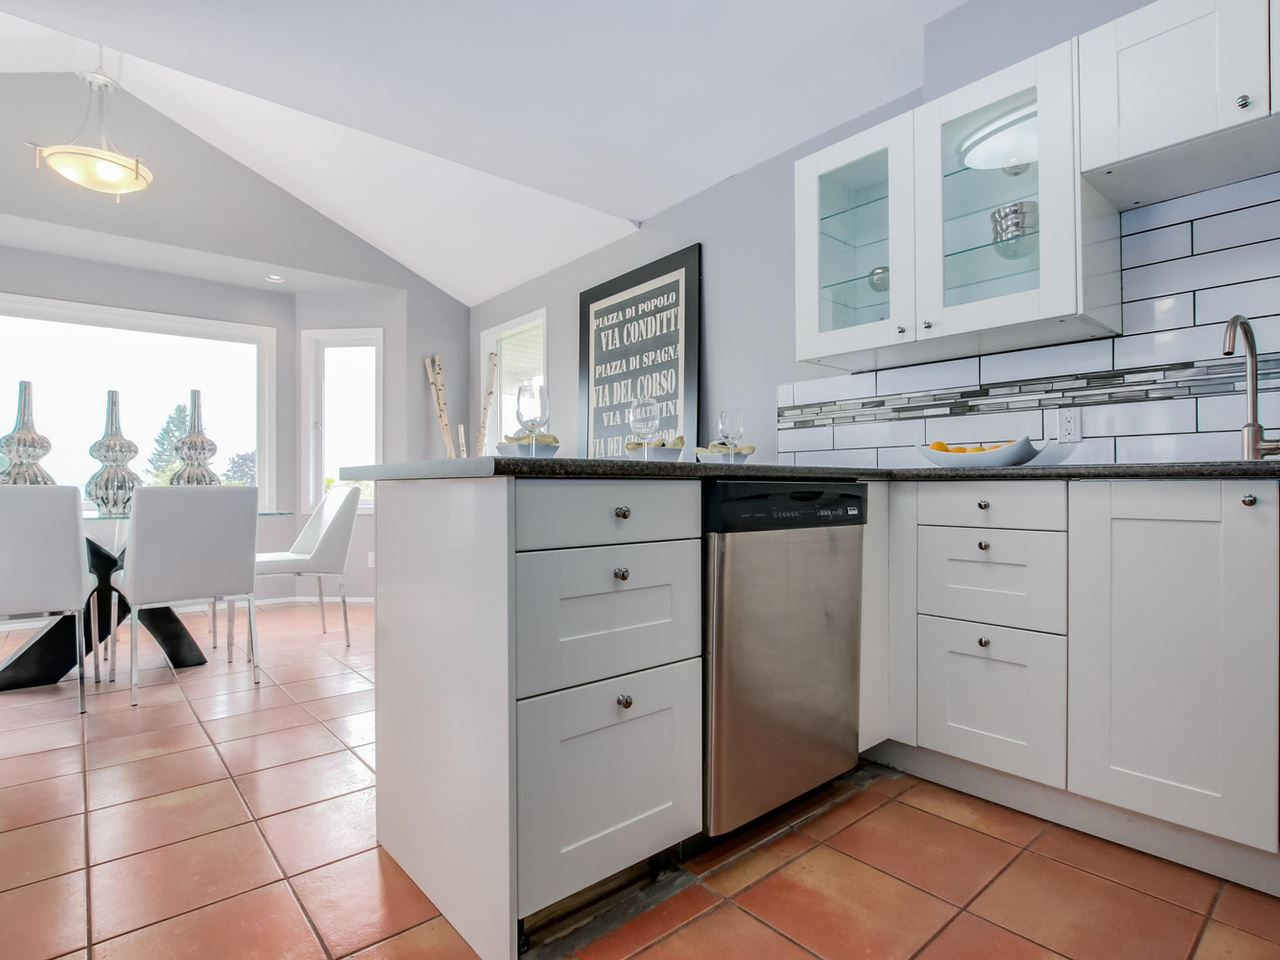 Photo 4: Photos: 1014 CALVERHALL Street in North Vancouver: Calverhall House for sale : MLS®# R2090205